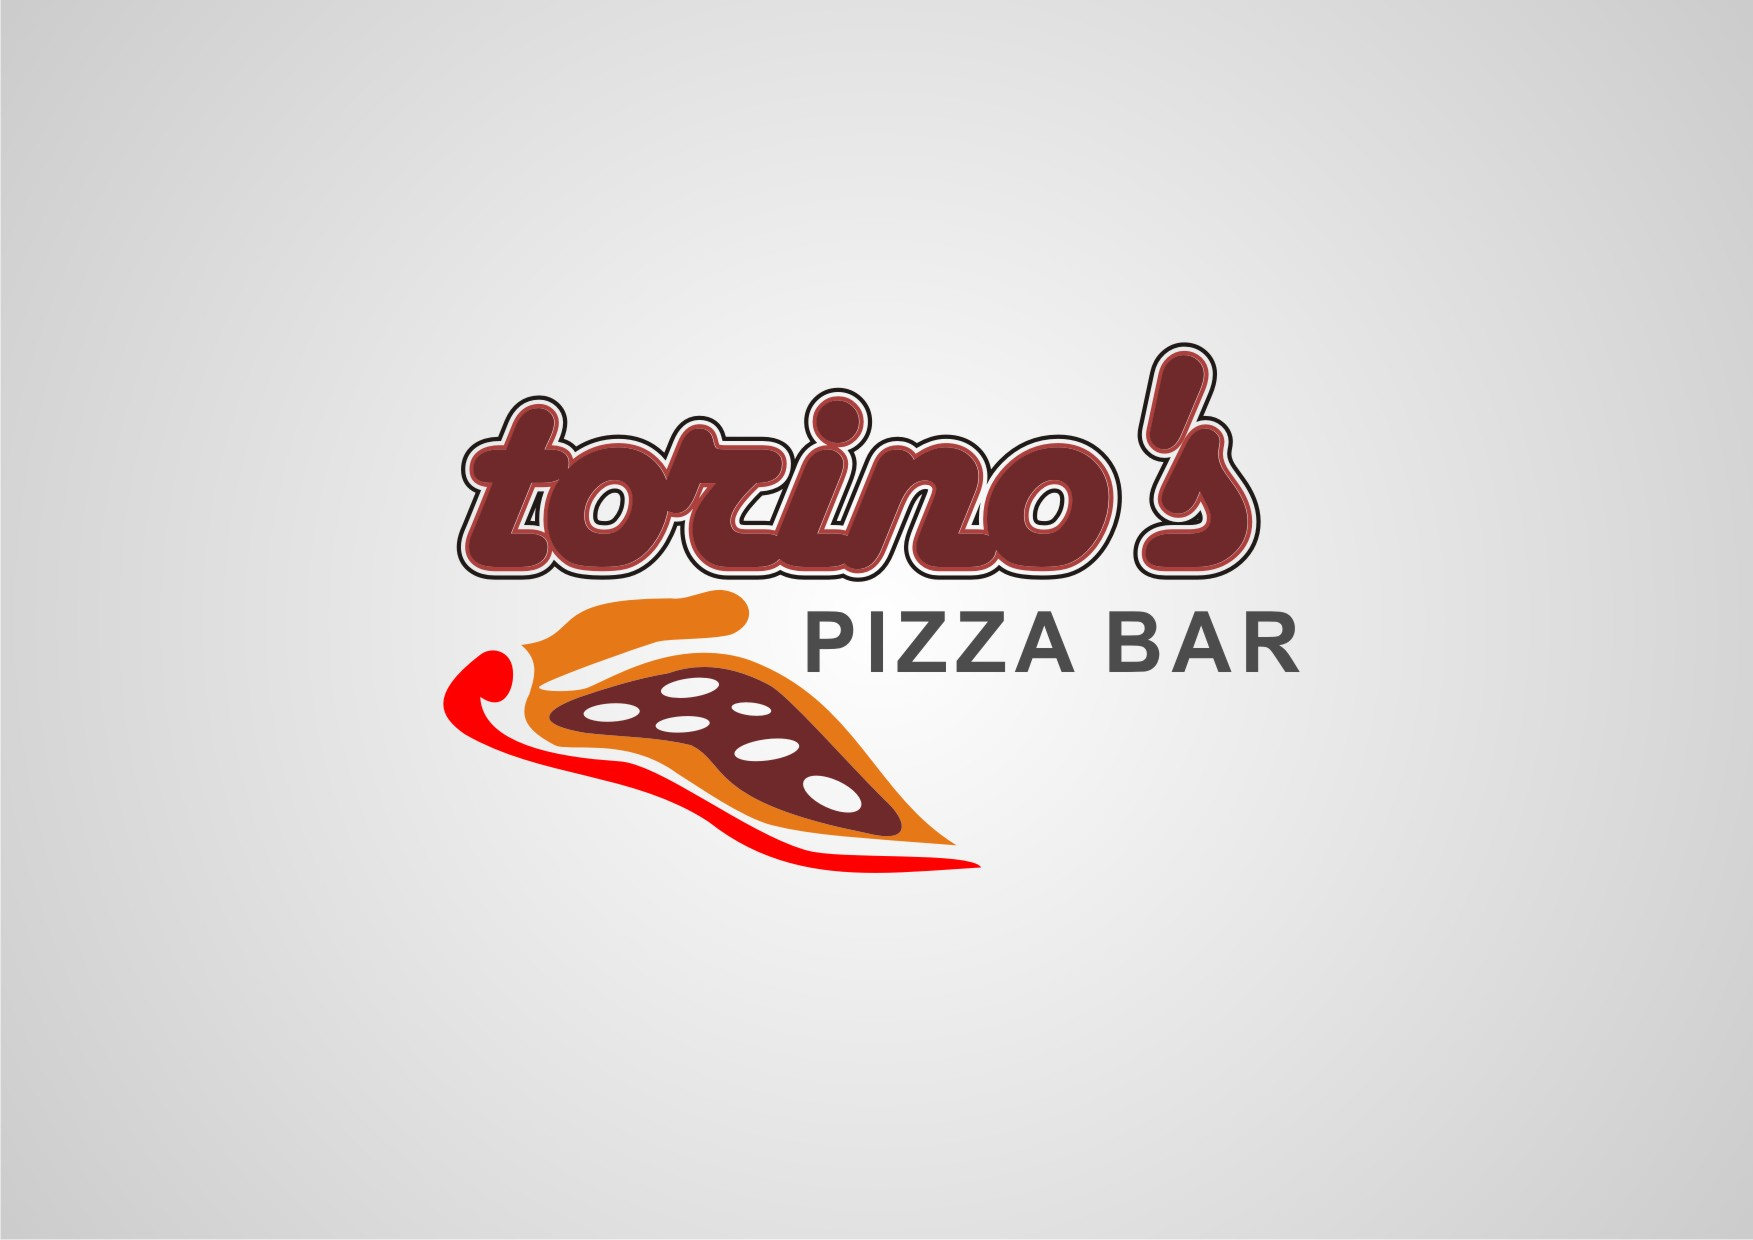 Custom Design by Private User - Entry No. 7 in the Custom Design Contest Torino's Pizza Bar Custom Design.